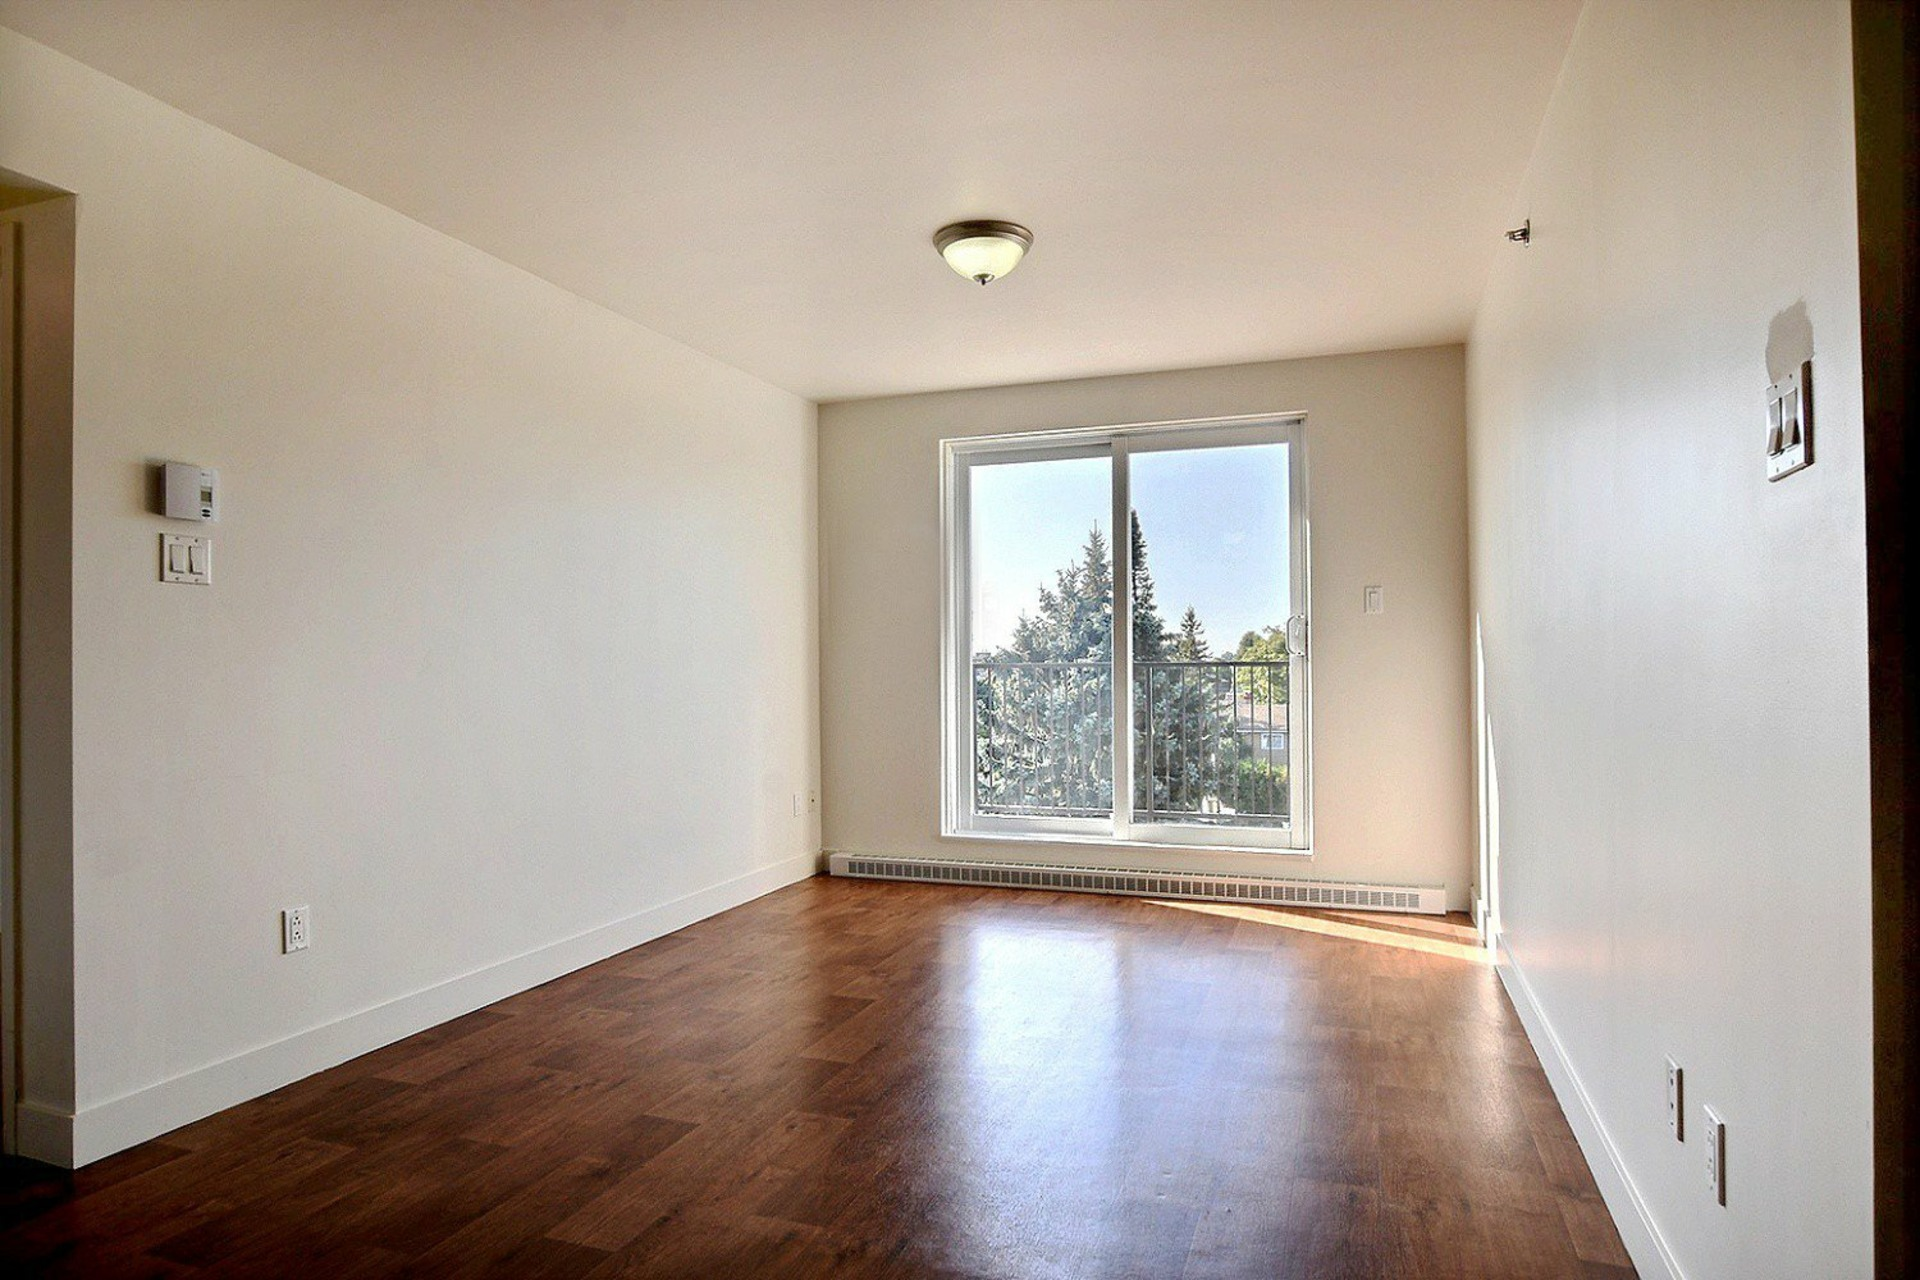 image 4 - Apartment For rent Brossard - 7 rooms